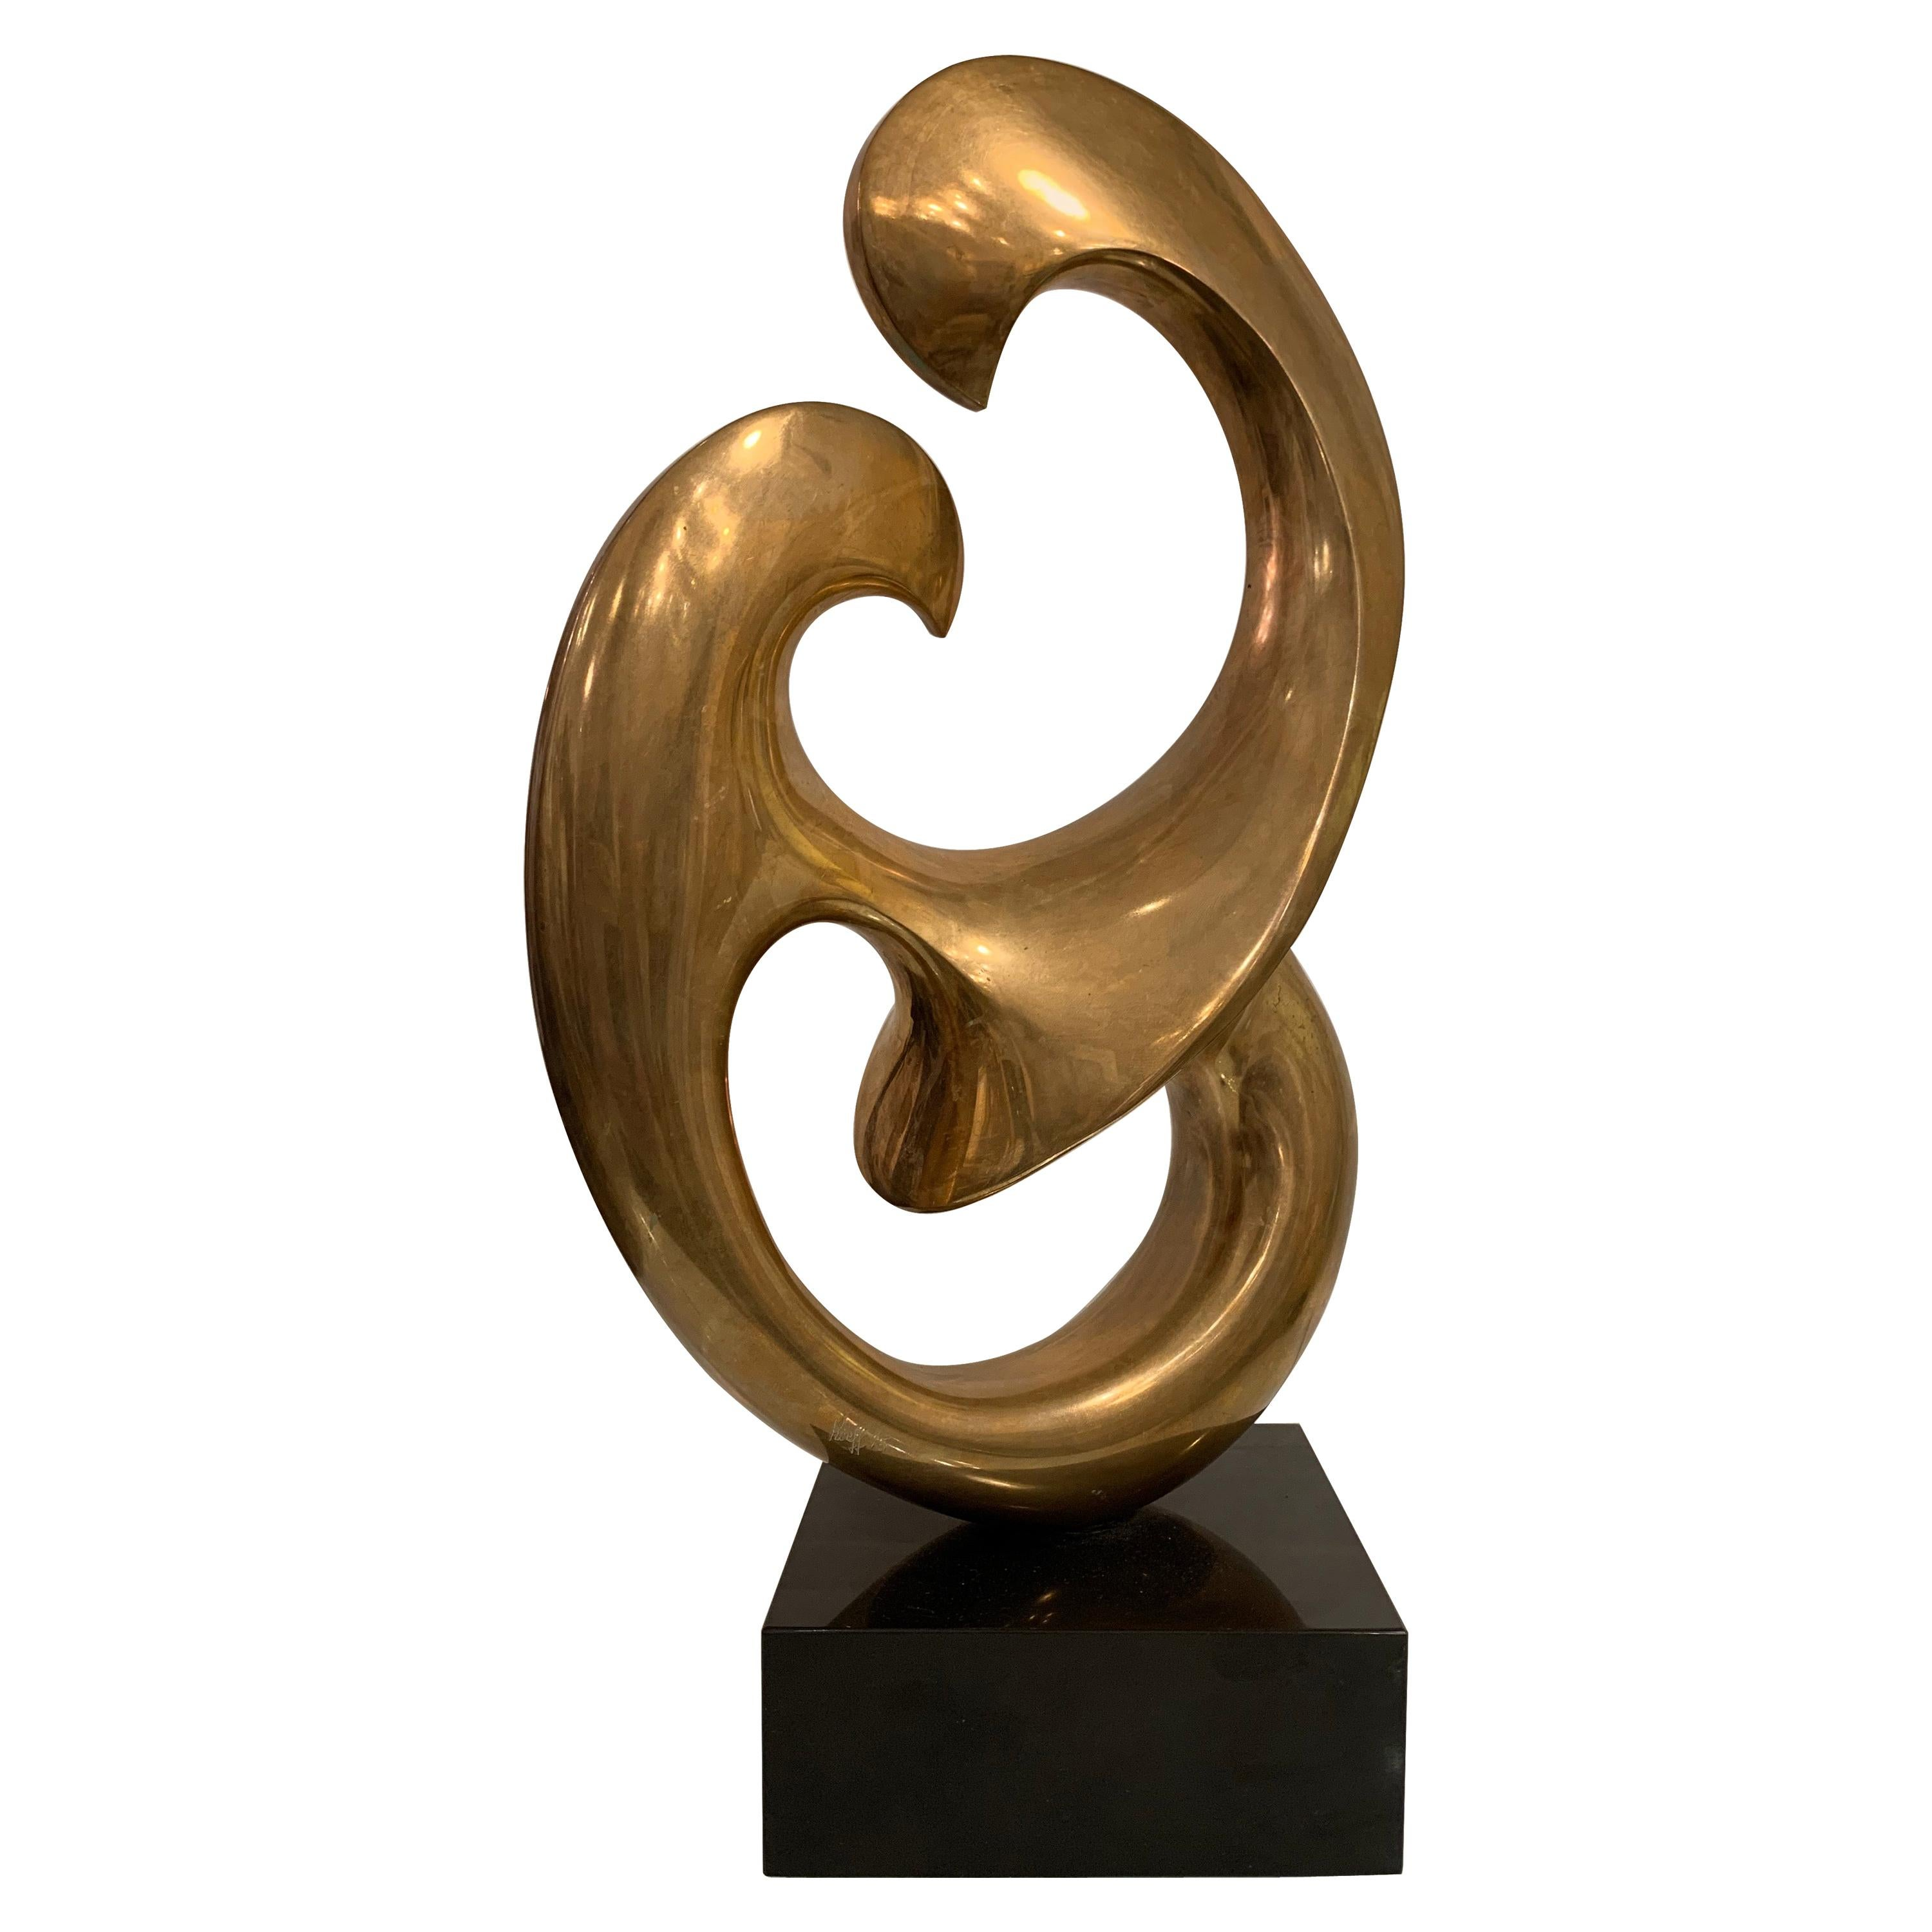 Bronze Sculpture by Antonio Grediaga Kieff, Signed and Numbered